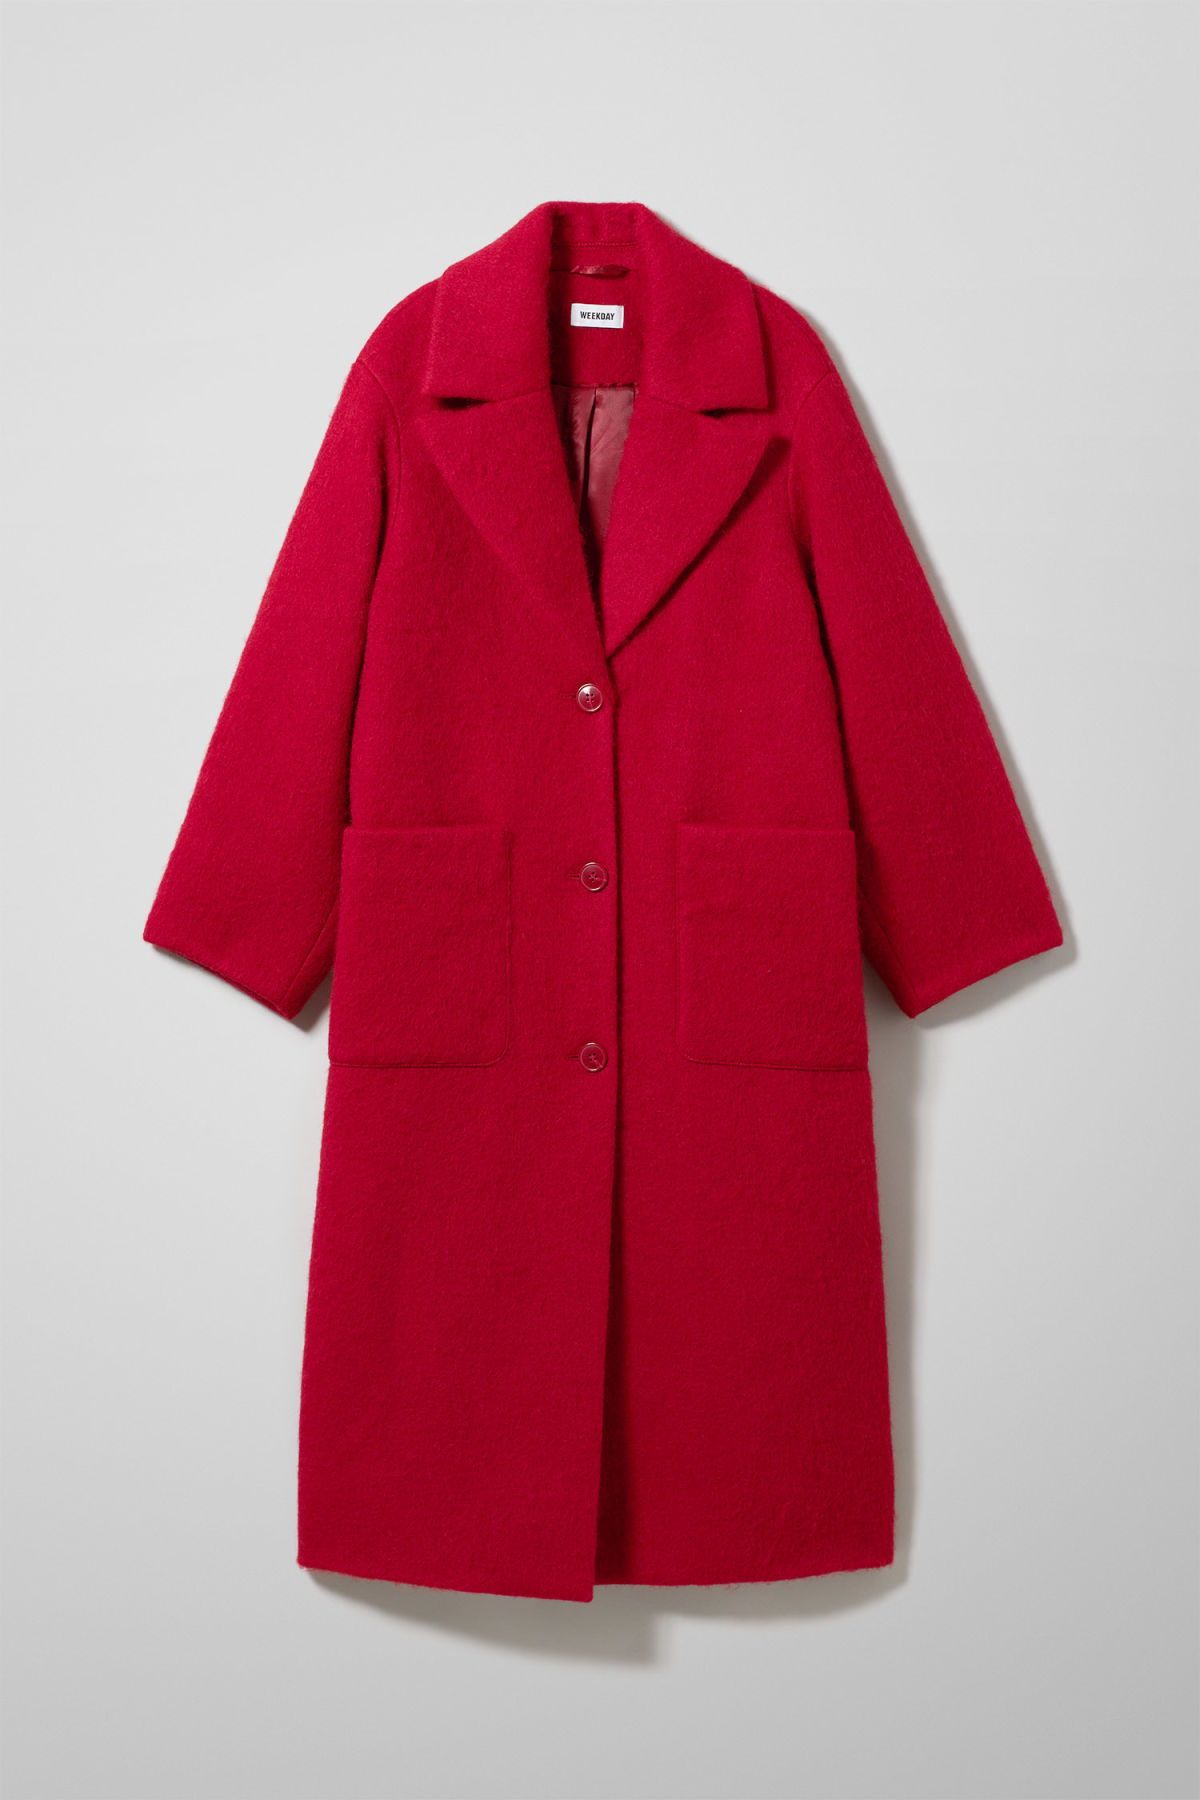 Stillife Front Image of Weekday Mario Coat in Red